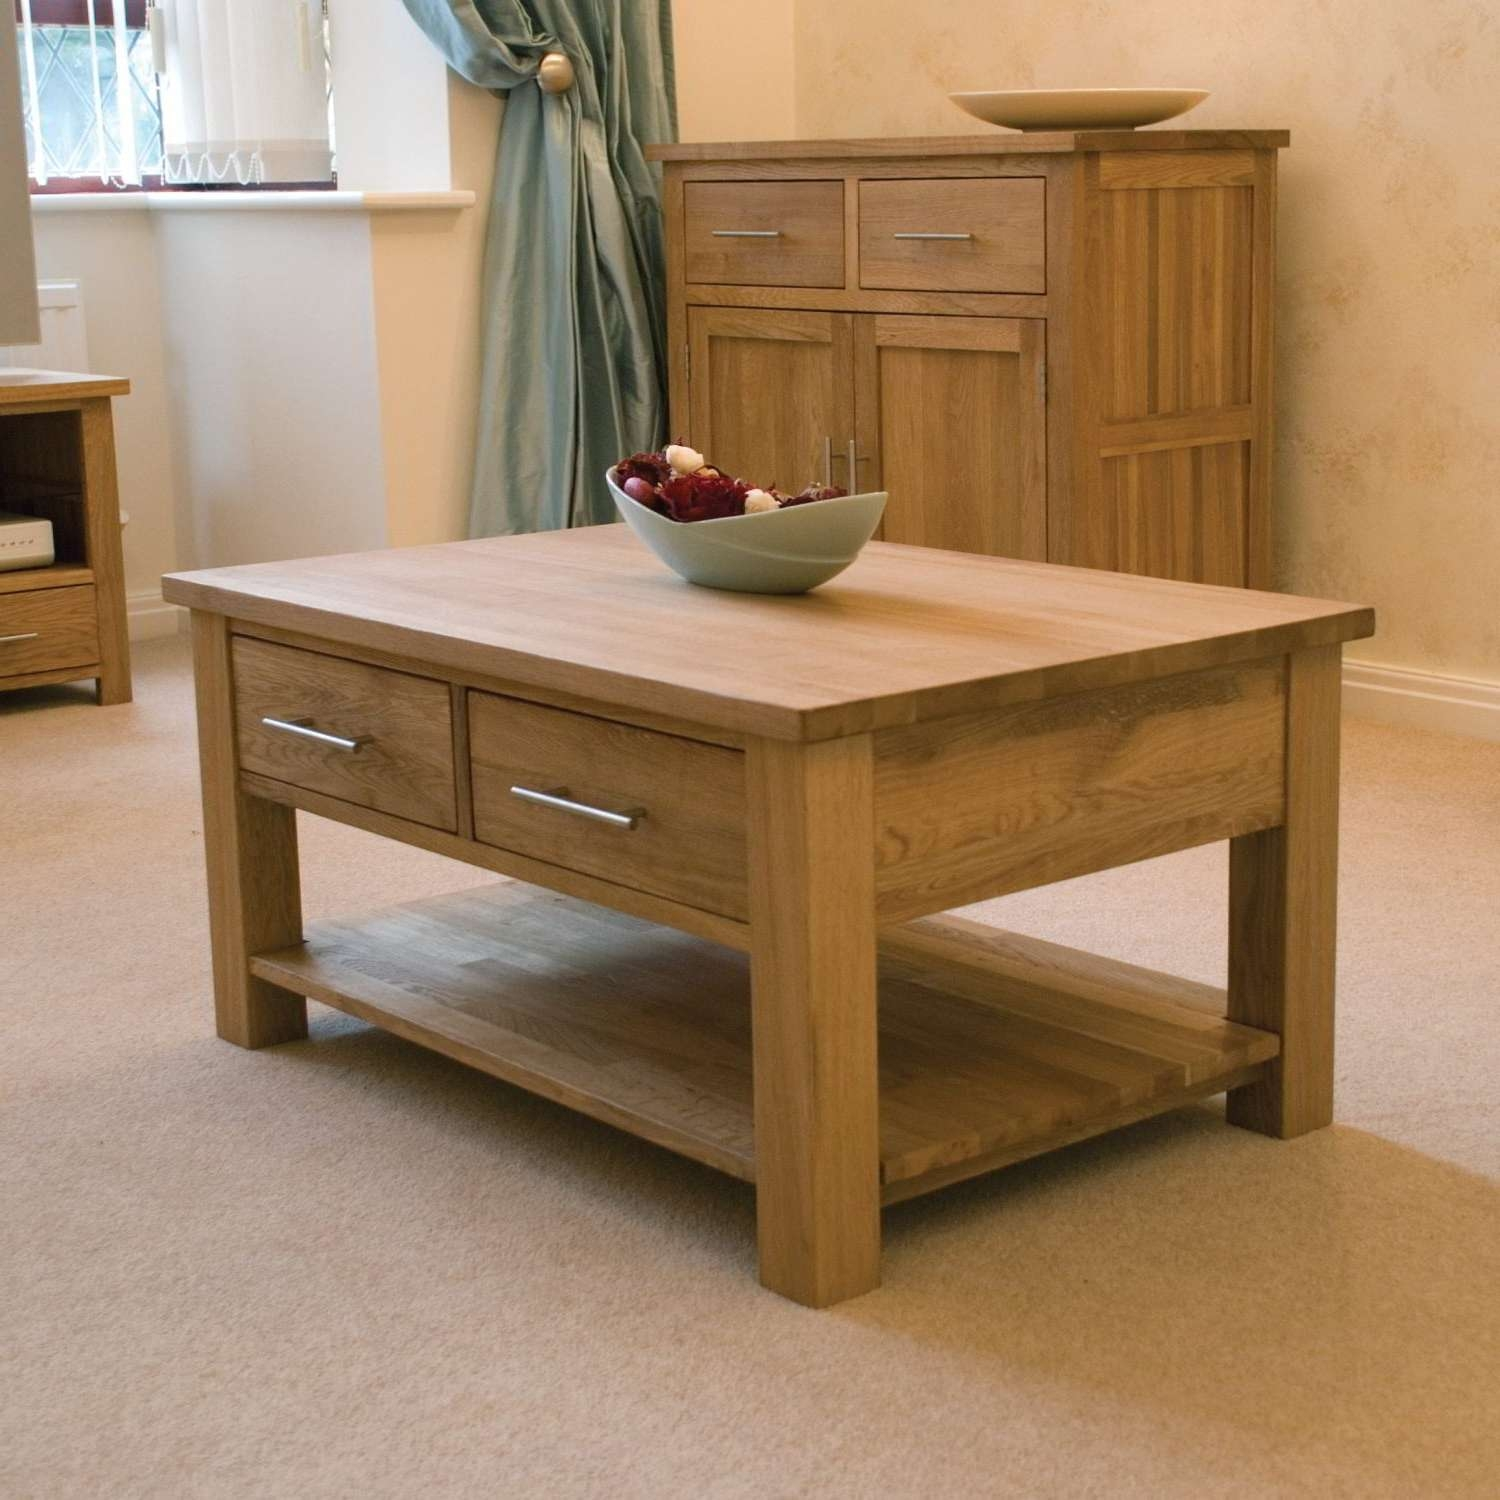 Well Known Pine Coffee Tables With Storage Within Coffee Table : Fabulous Big Coffee Tables Rustic Square Coffee (View 5 of 20)